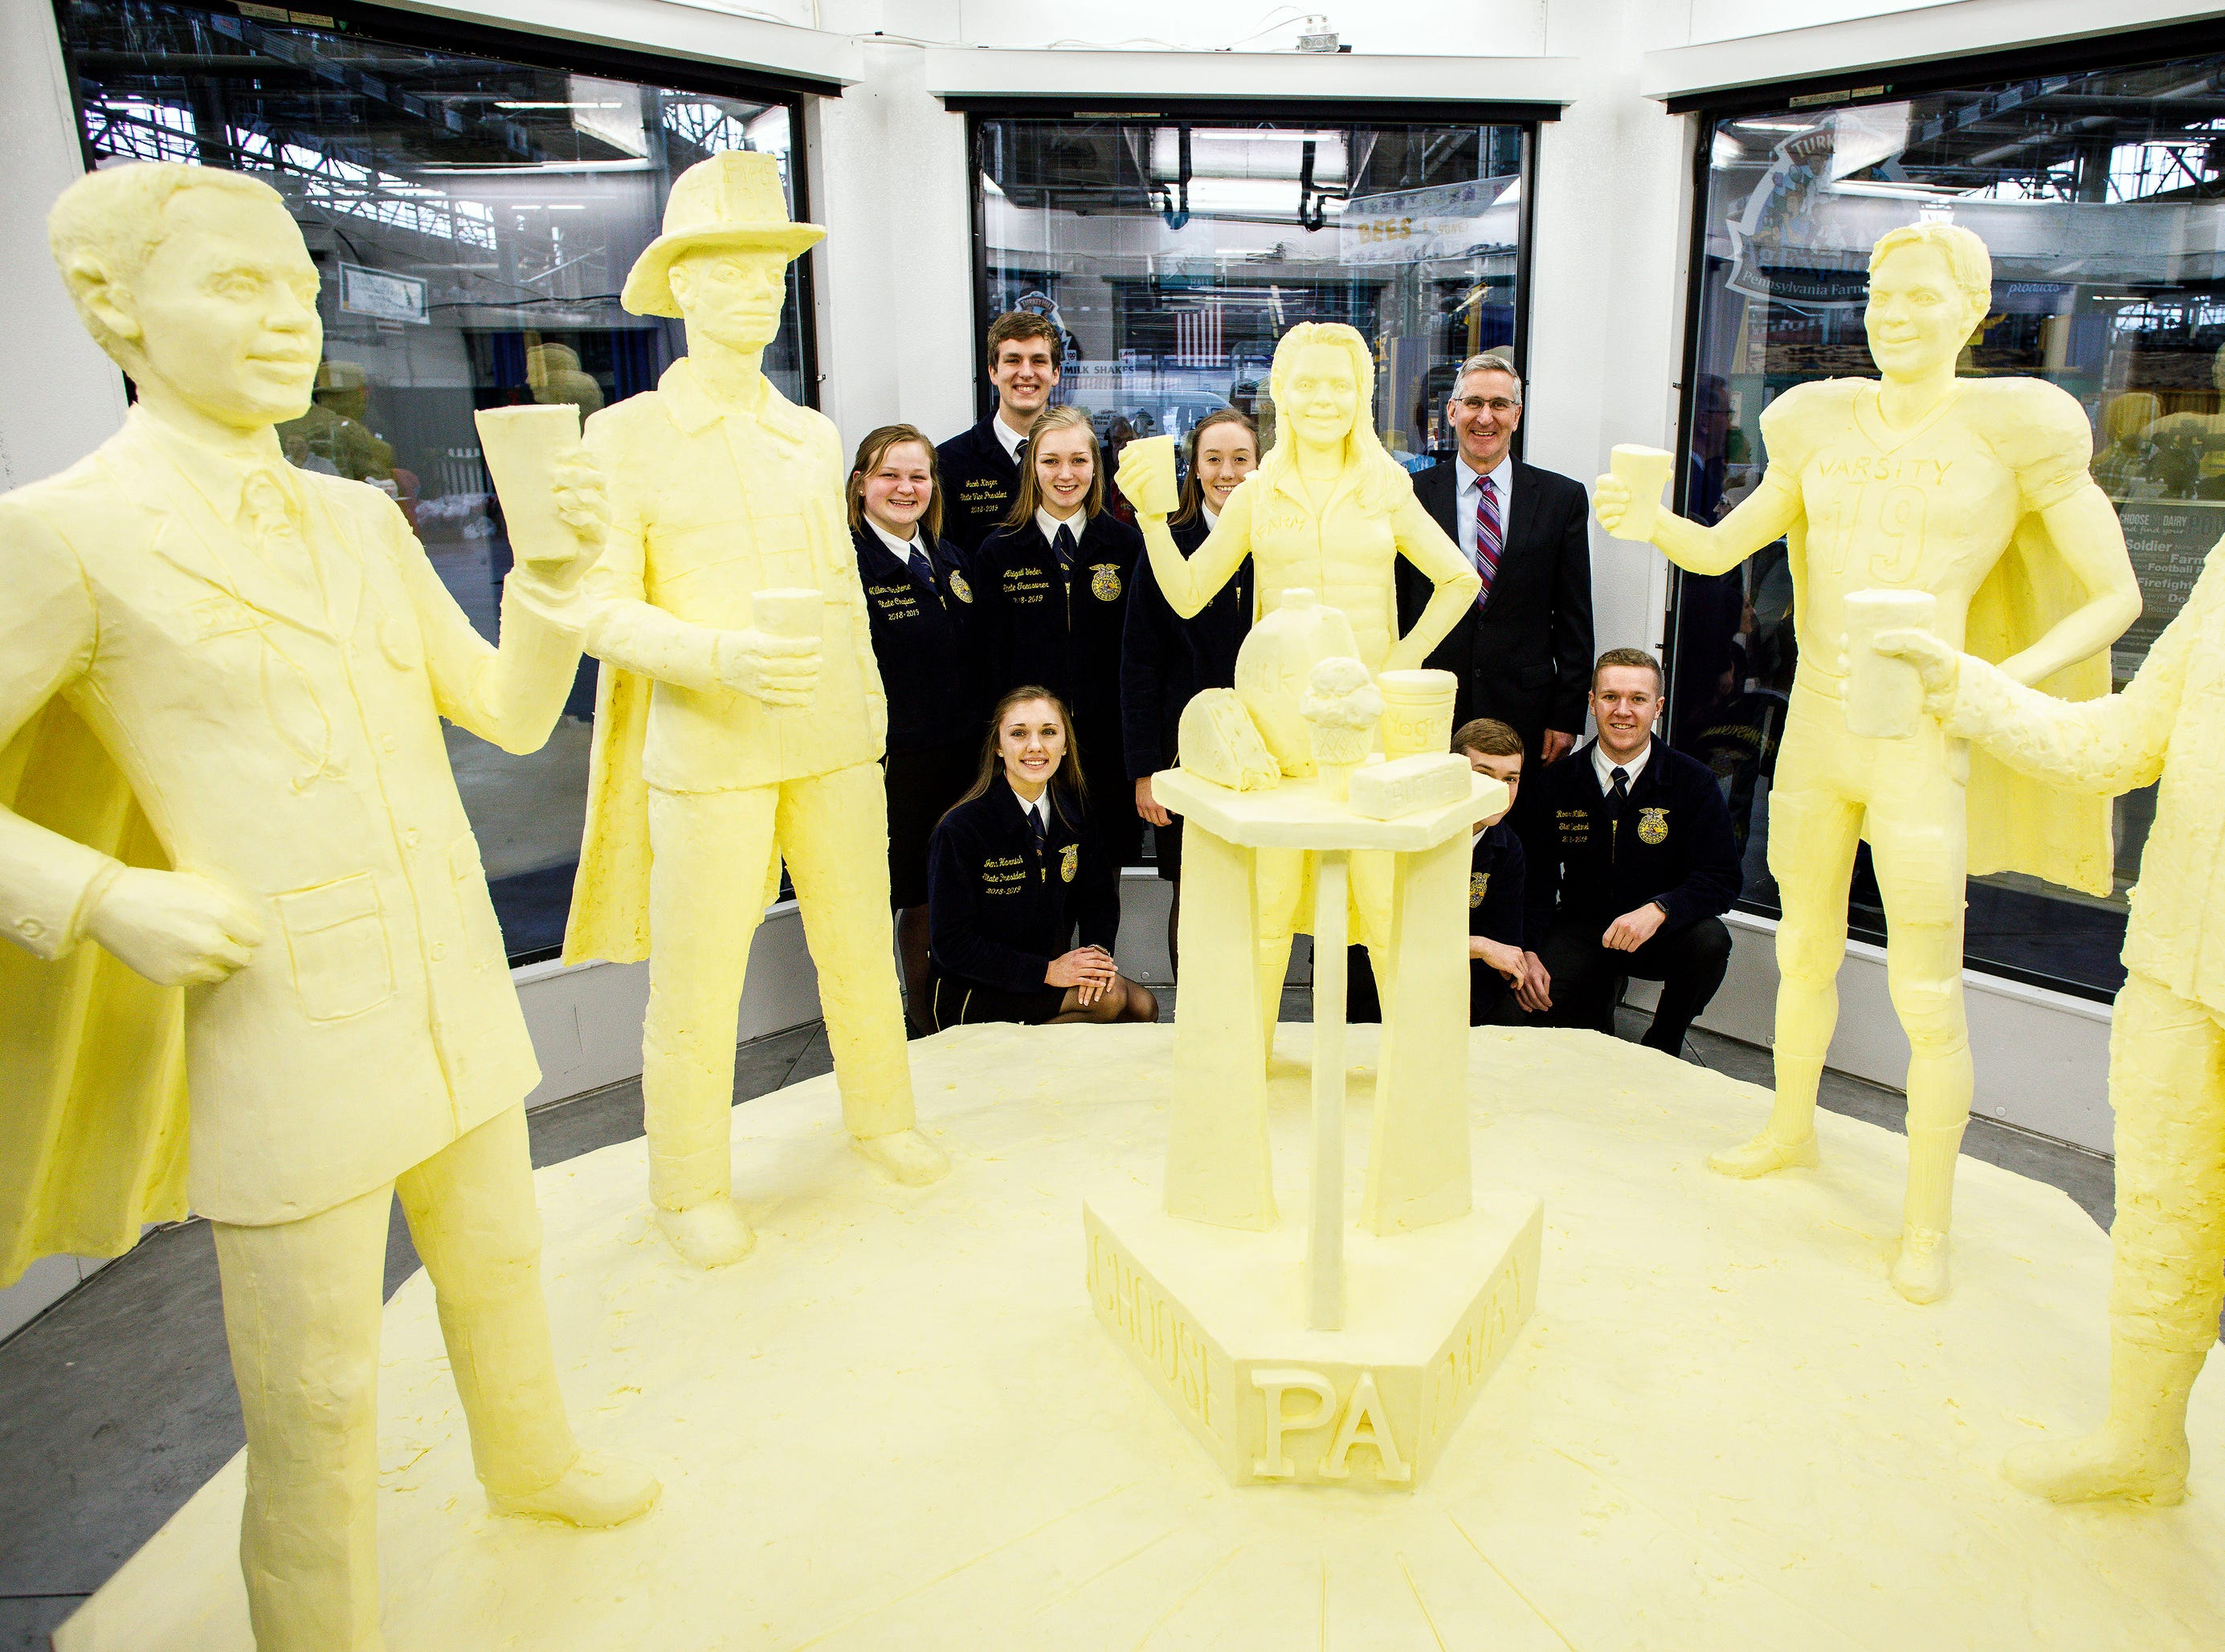 "Pennsylvania Secretary of Agriculture Russell Redding, top right, poses for a photo in the refrigerated case with state dairy princesses after the butter sculpture was revealed at the 103rd Pennsylvania Farm Show Thursday, Jan. 3, 2019, in Harrisburg, Pa. The sculpture, made from more than 1,000 pounds of butter, follows the theme of this year's Pennsylvania Dairy campaign, ""Find Your Power."" It depicts an athlete, soldier, doctor, firefighter and dairy farmer wearing superhero capes. (Dan Gleiter/The Patriot-News via AP)"